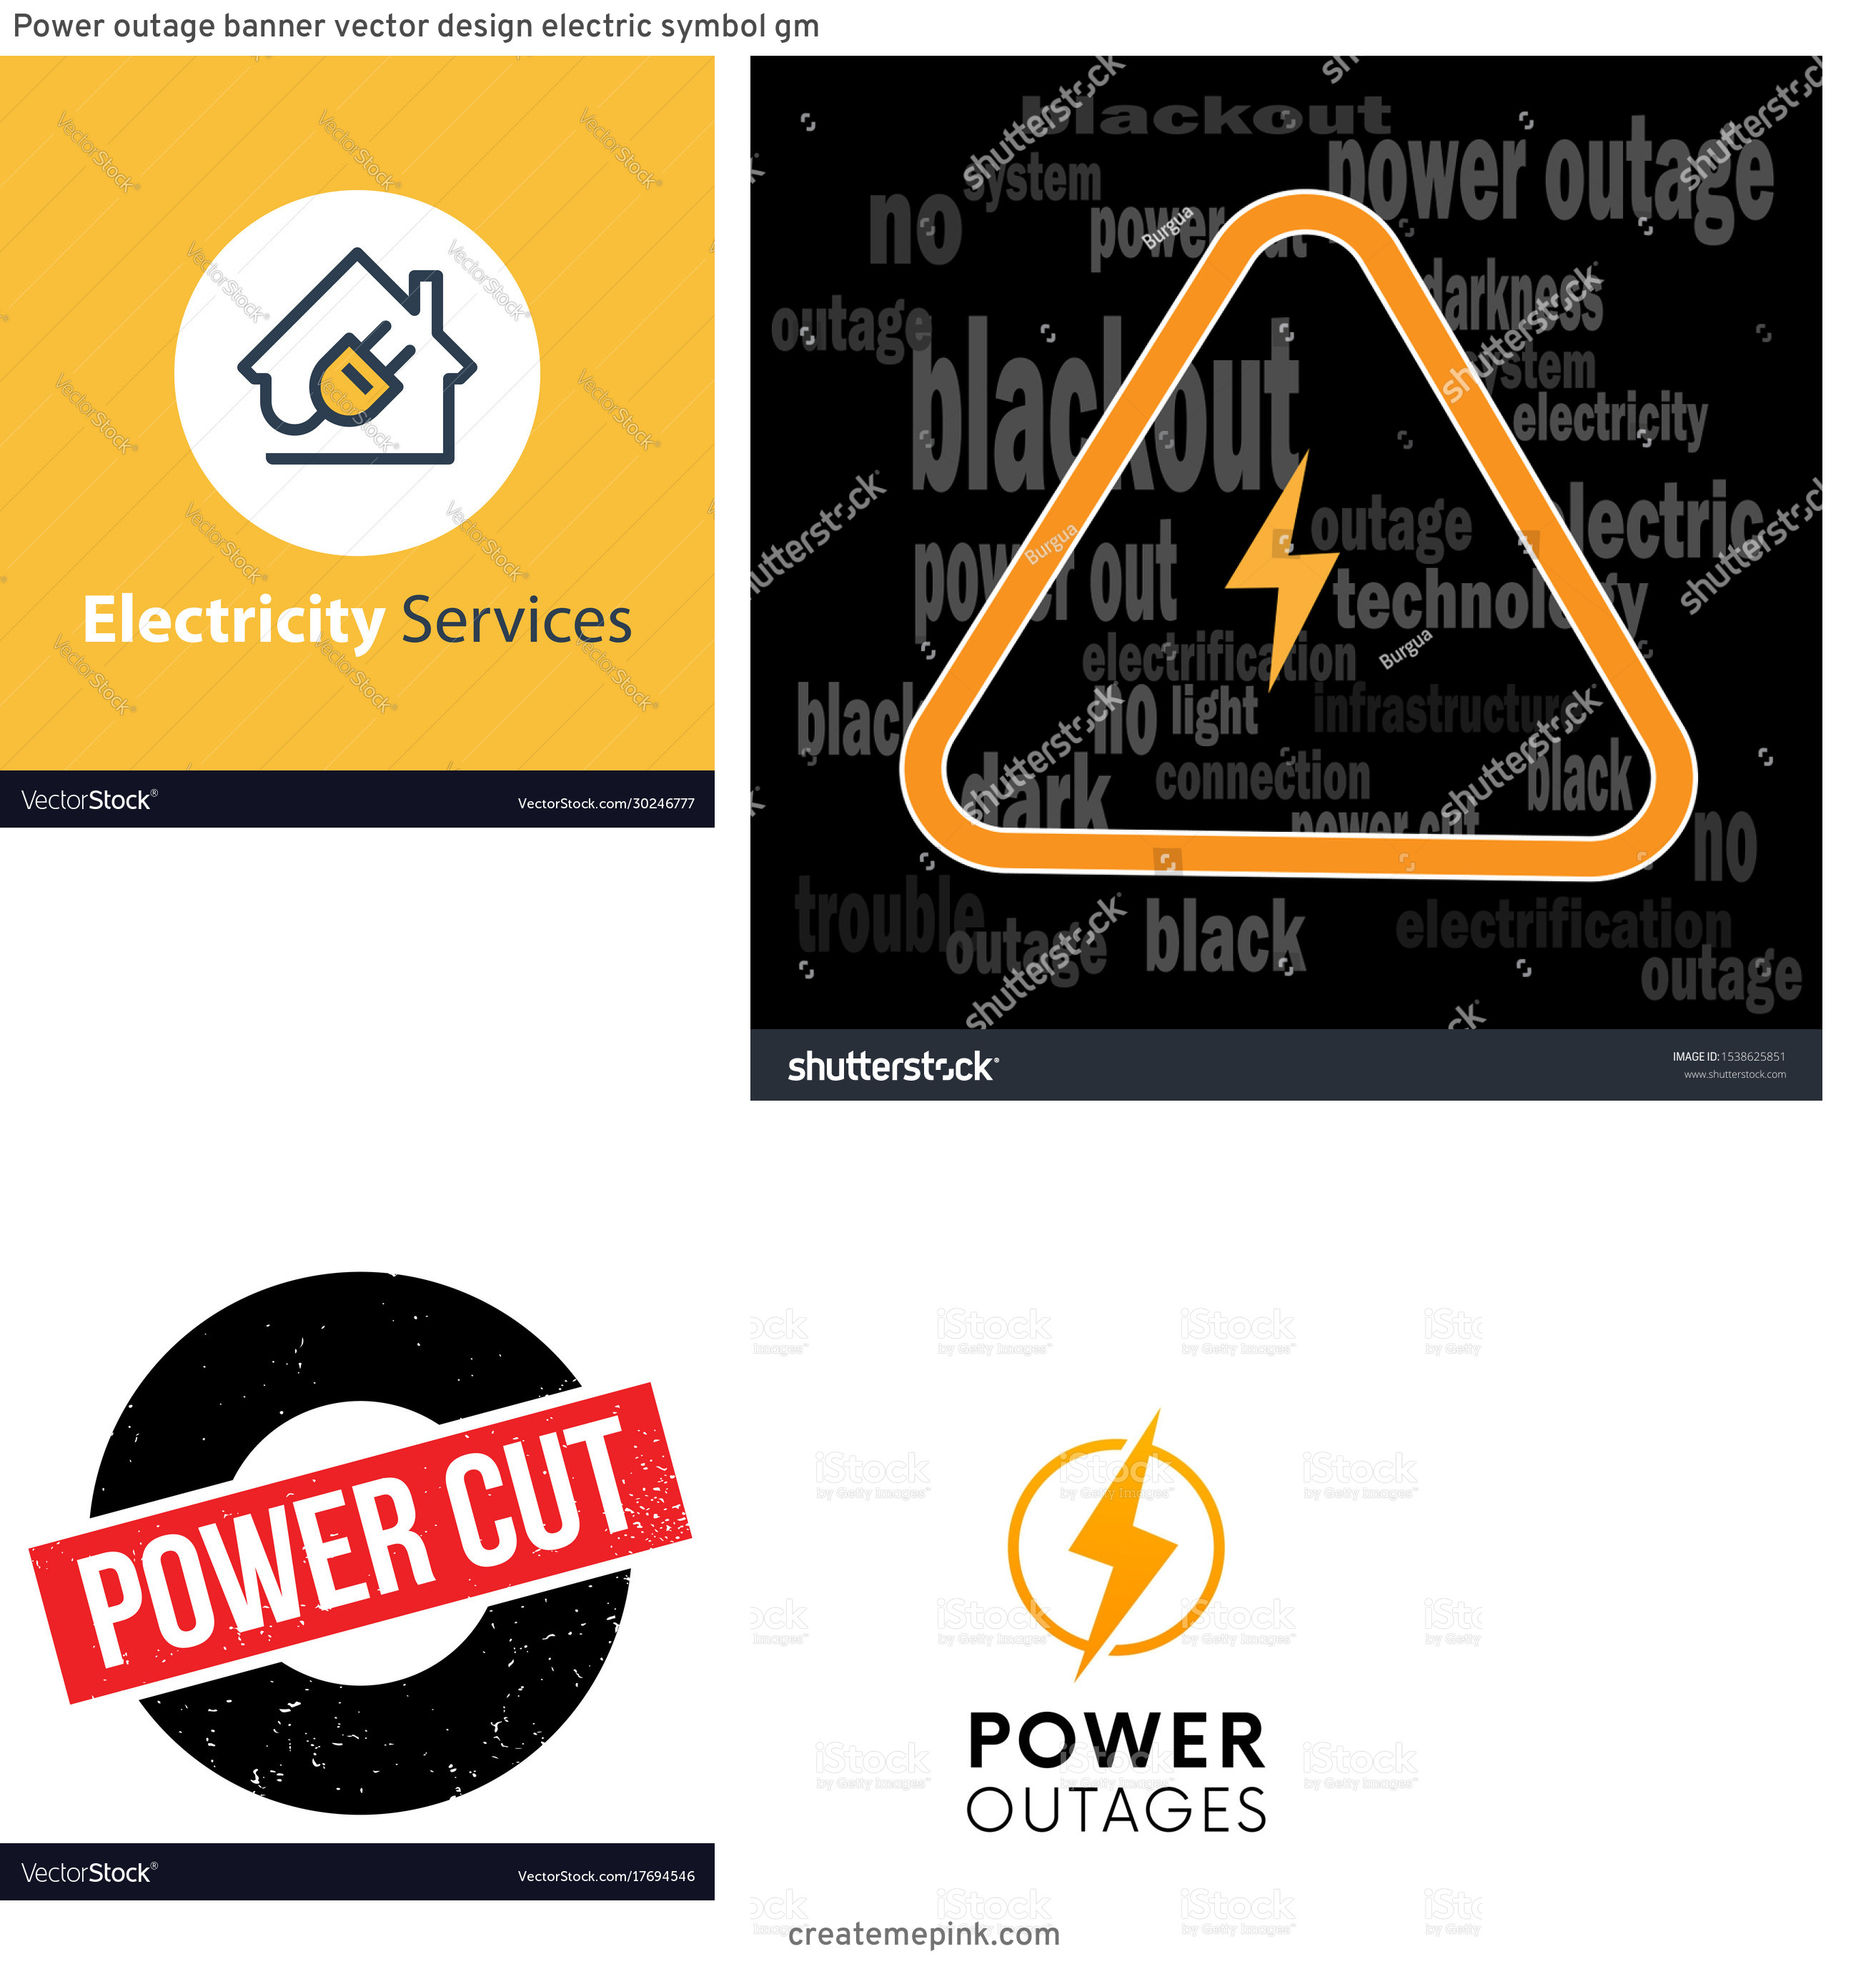 Vector Power Outage: Power Outage Banner Vector Design Electric Symbol Gm